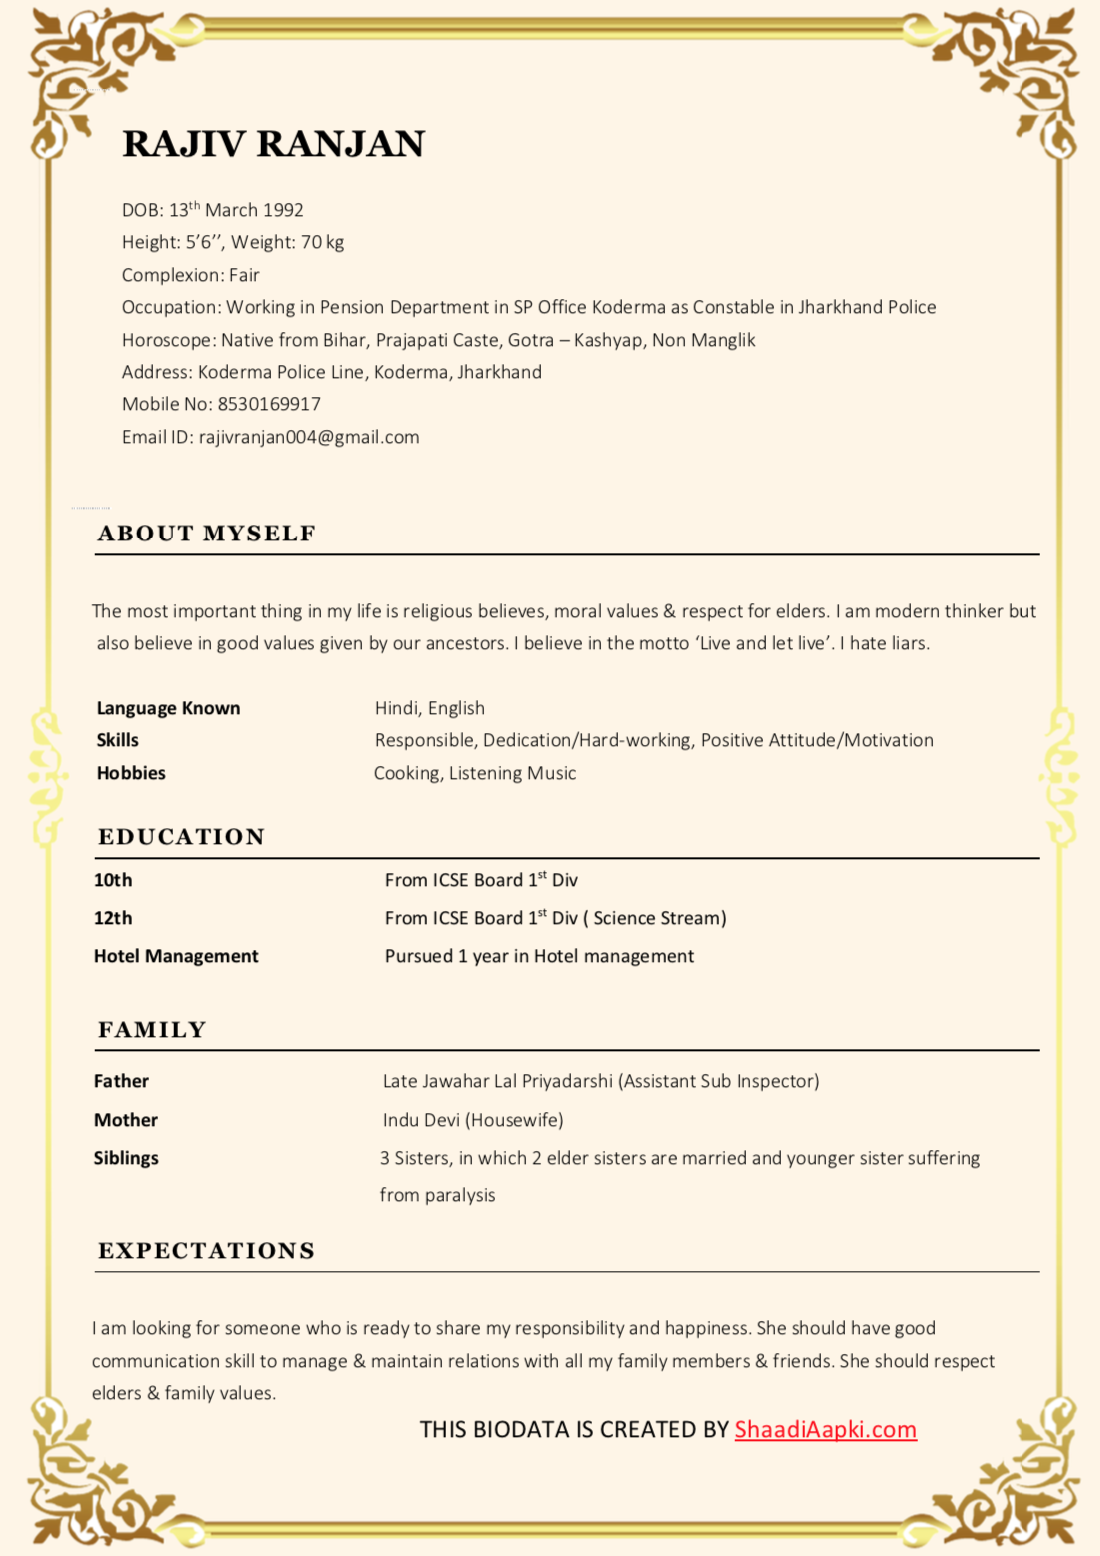 create your own marriage biodata creative premium marriage